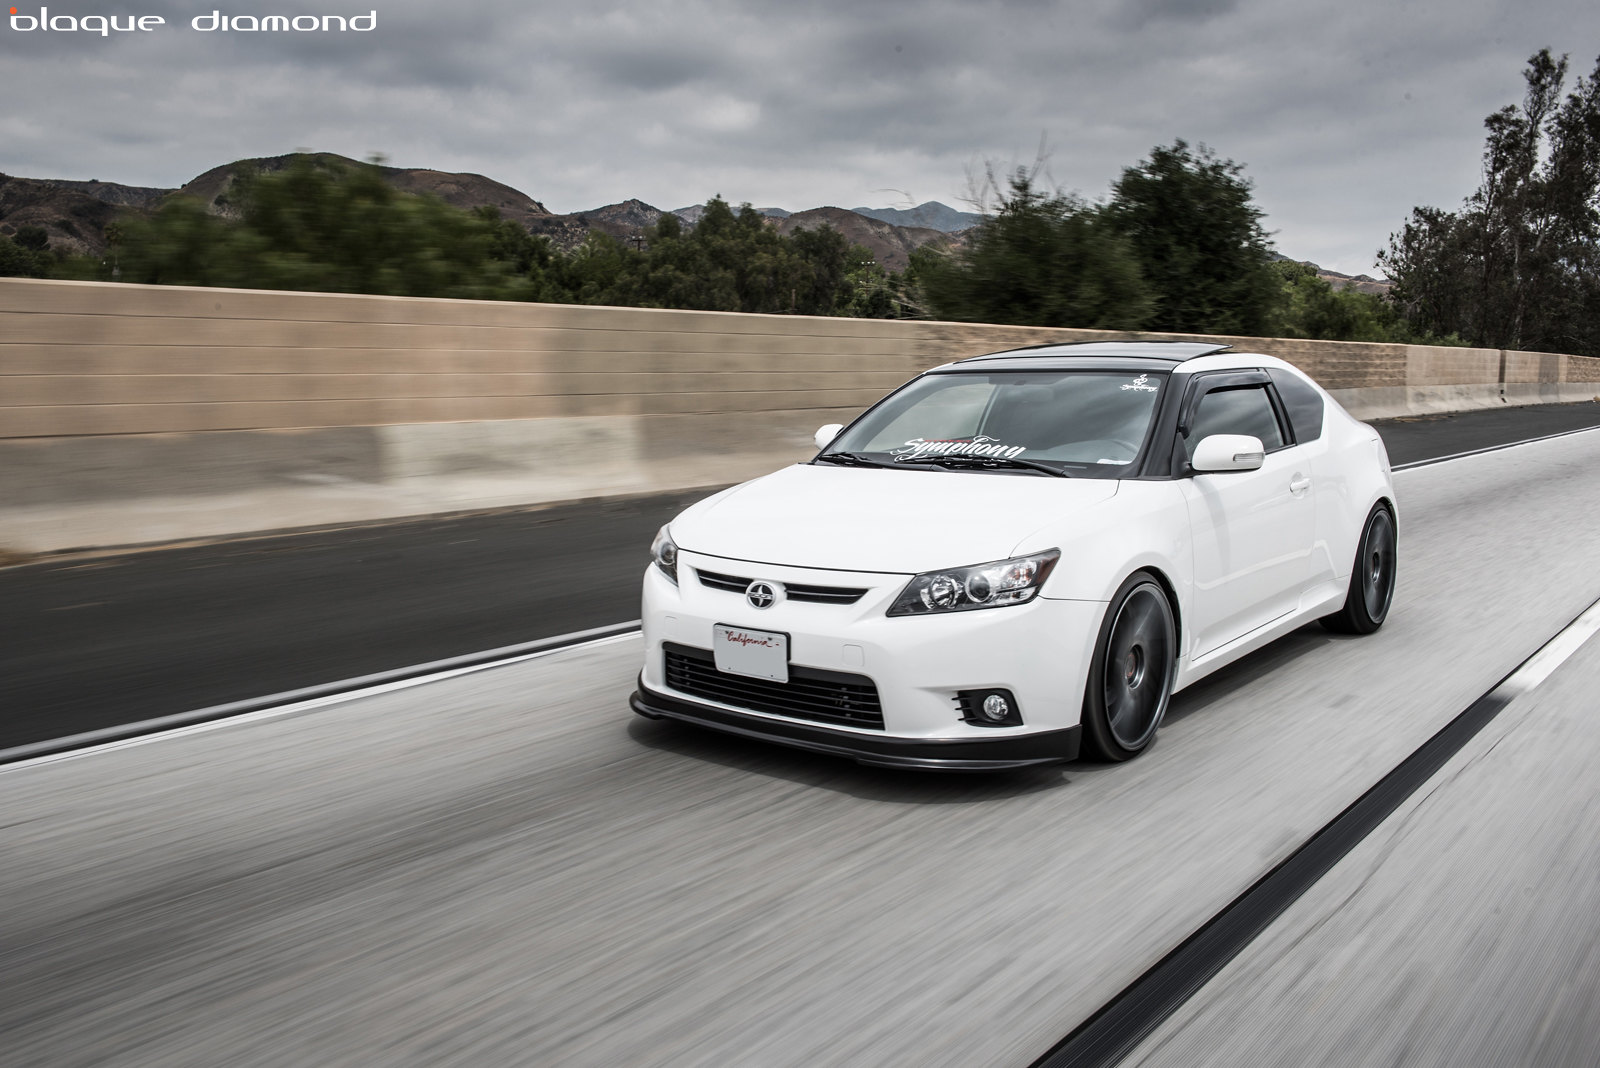 2011-Scion-Tc2-white-BD-1-20-inch-staggered-graphite-blaque-diamond-1